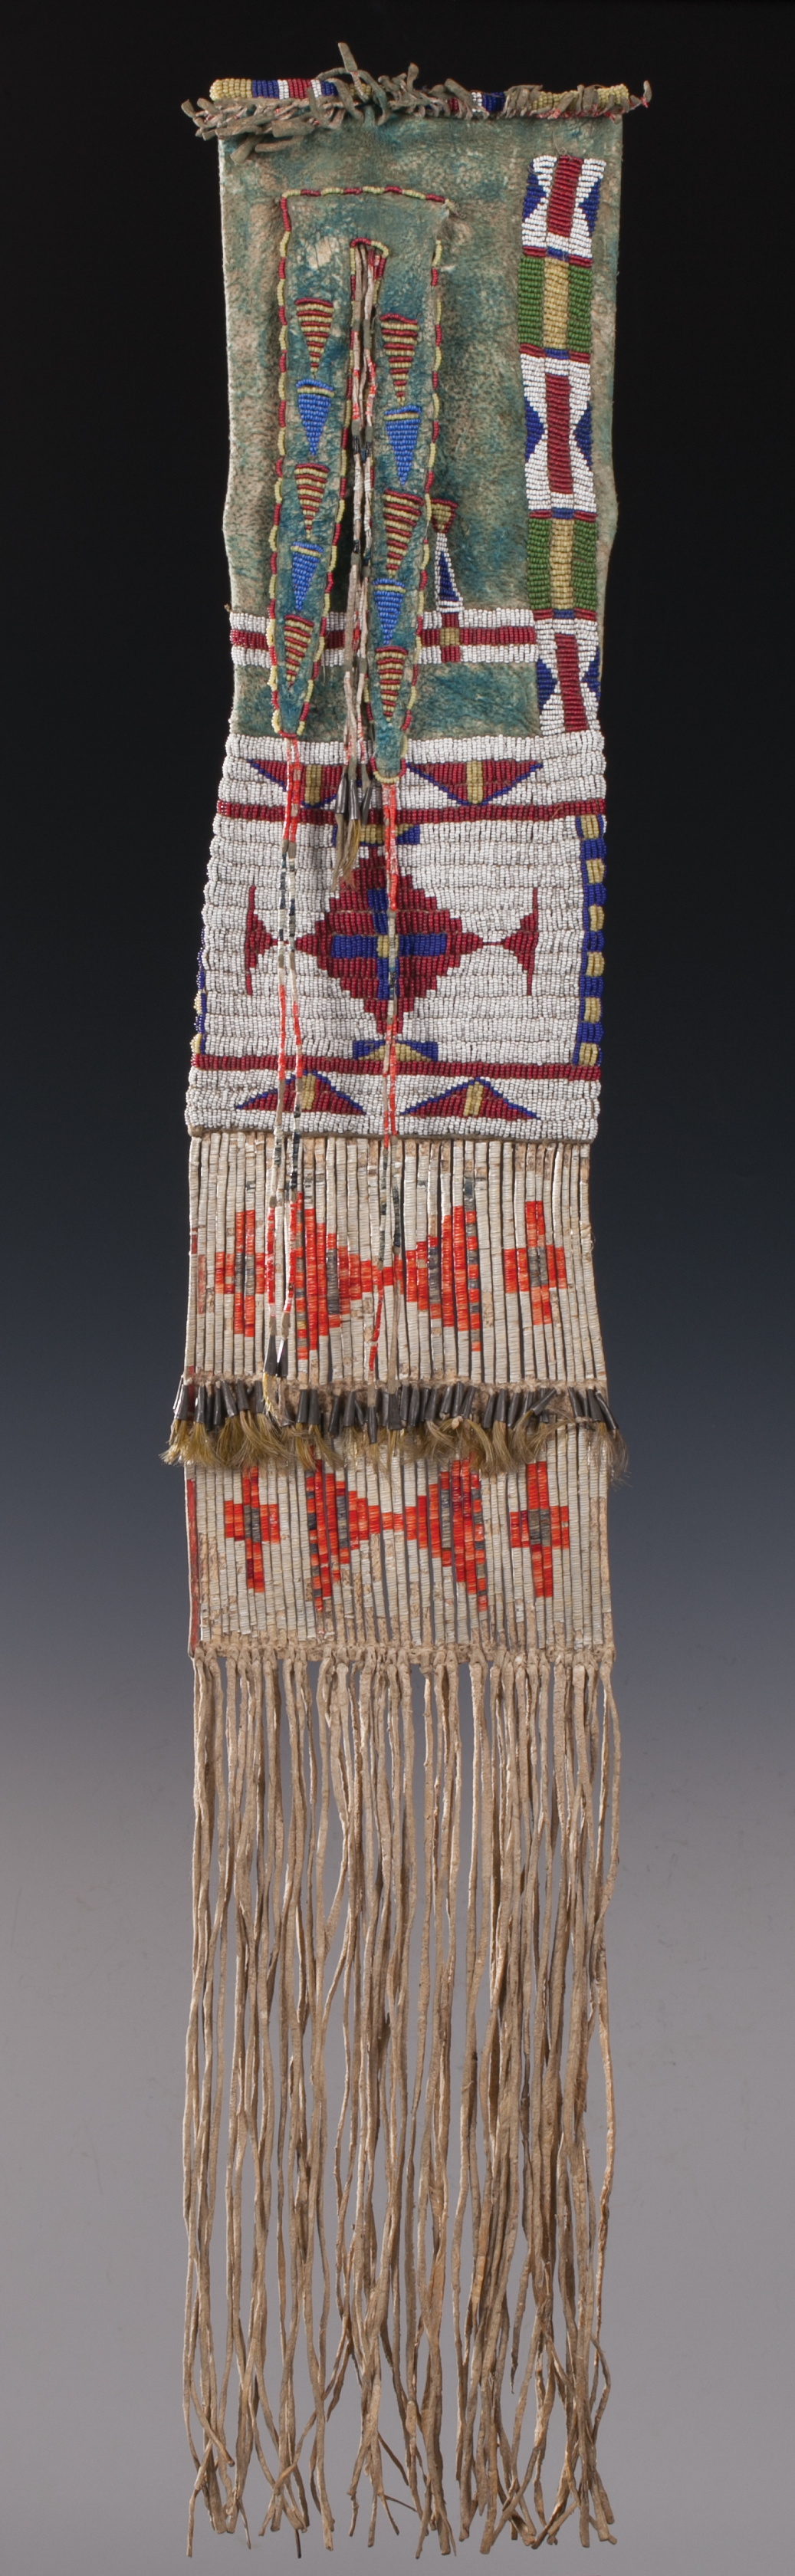 Lot 221: Plains / Sioux Pipe Bag.   Brian Lebel's Mesa Auction - January 21, 2017 Sold $7,080